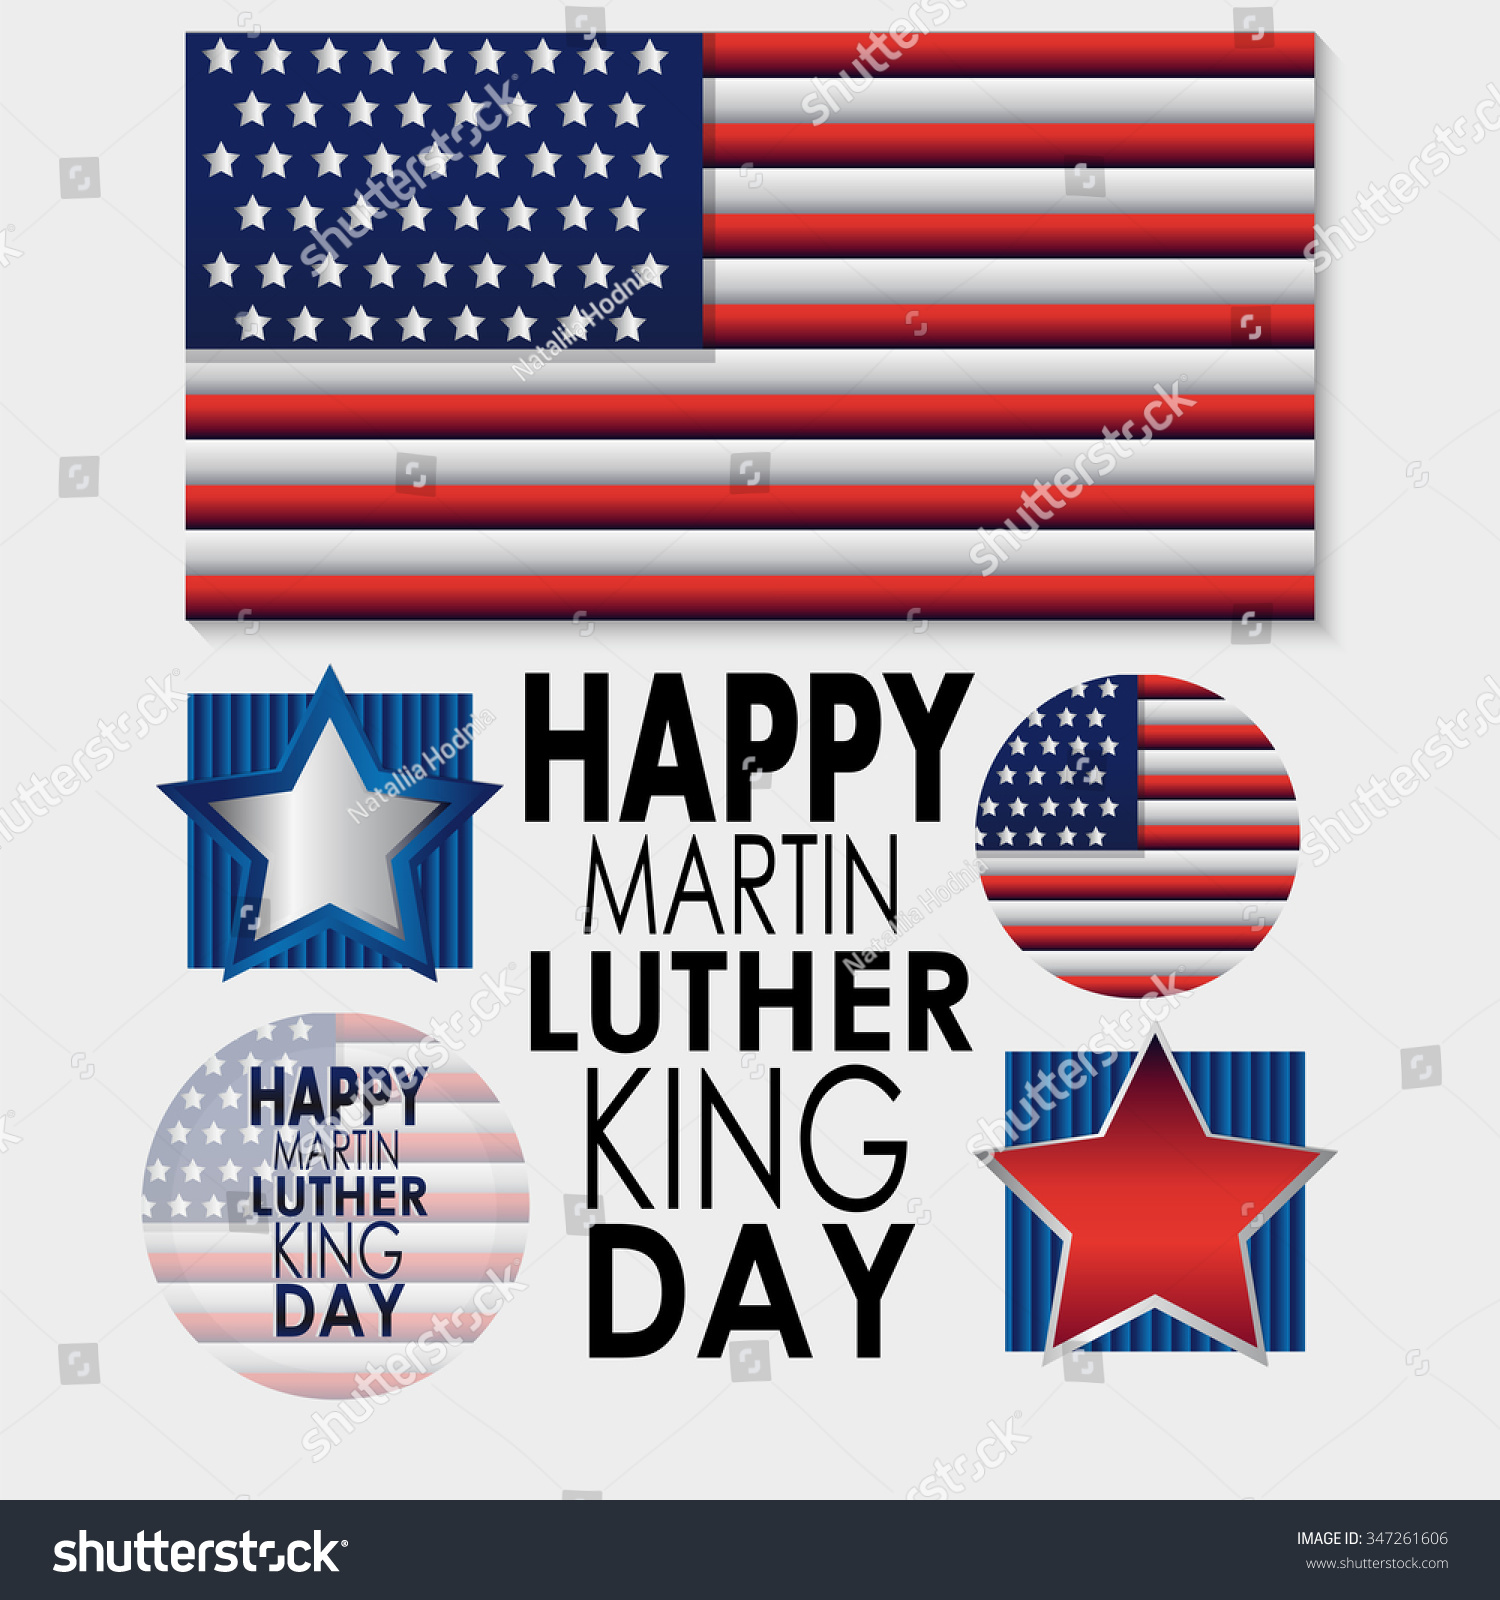 Happy Martin Luther King Day Clip Art